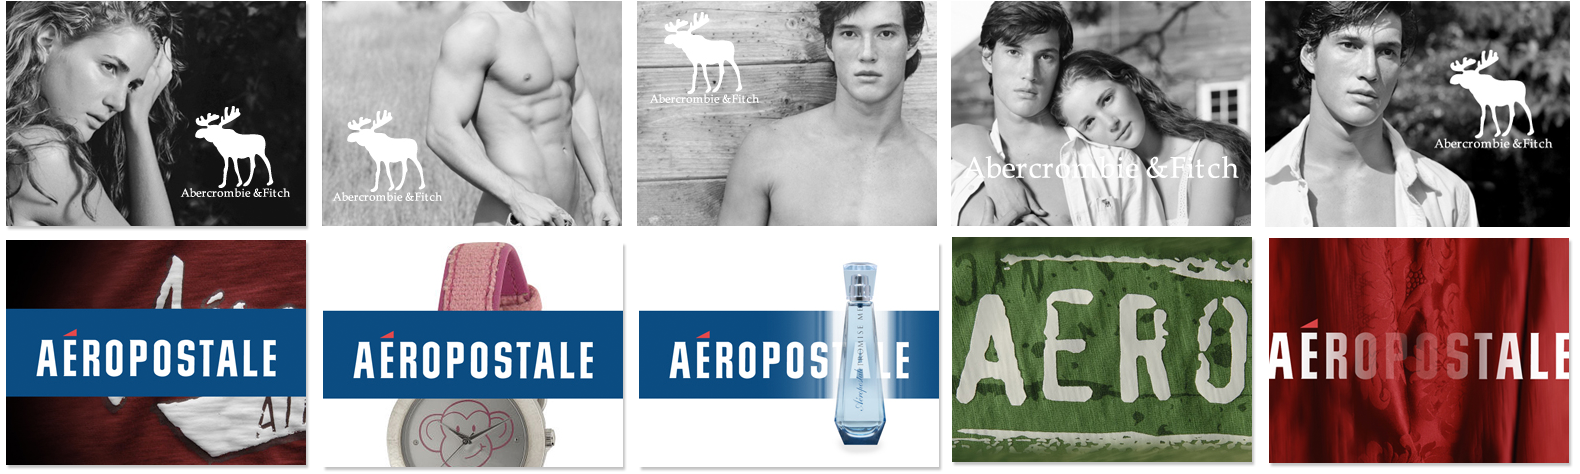 ABERCROMBIE & FITCH AEROPOSTALE